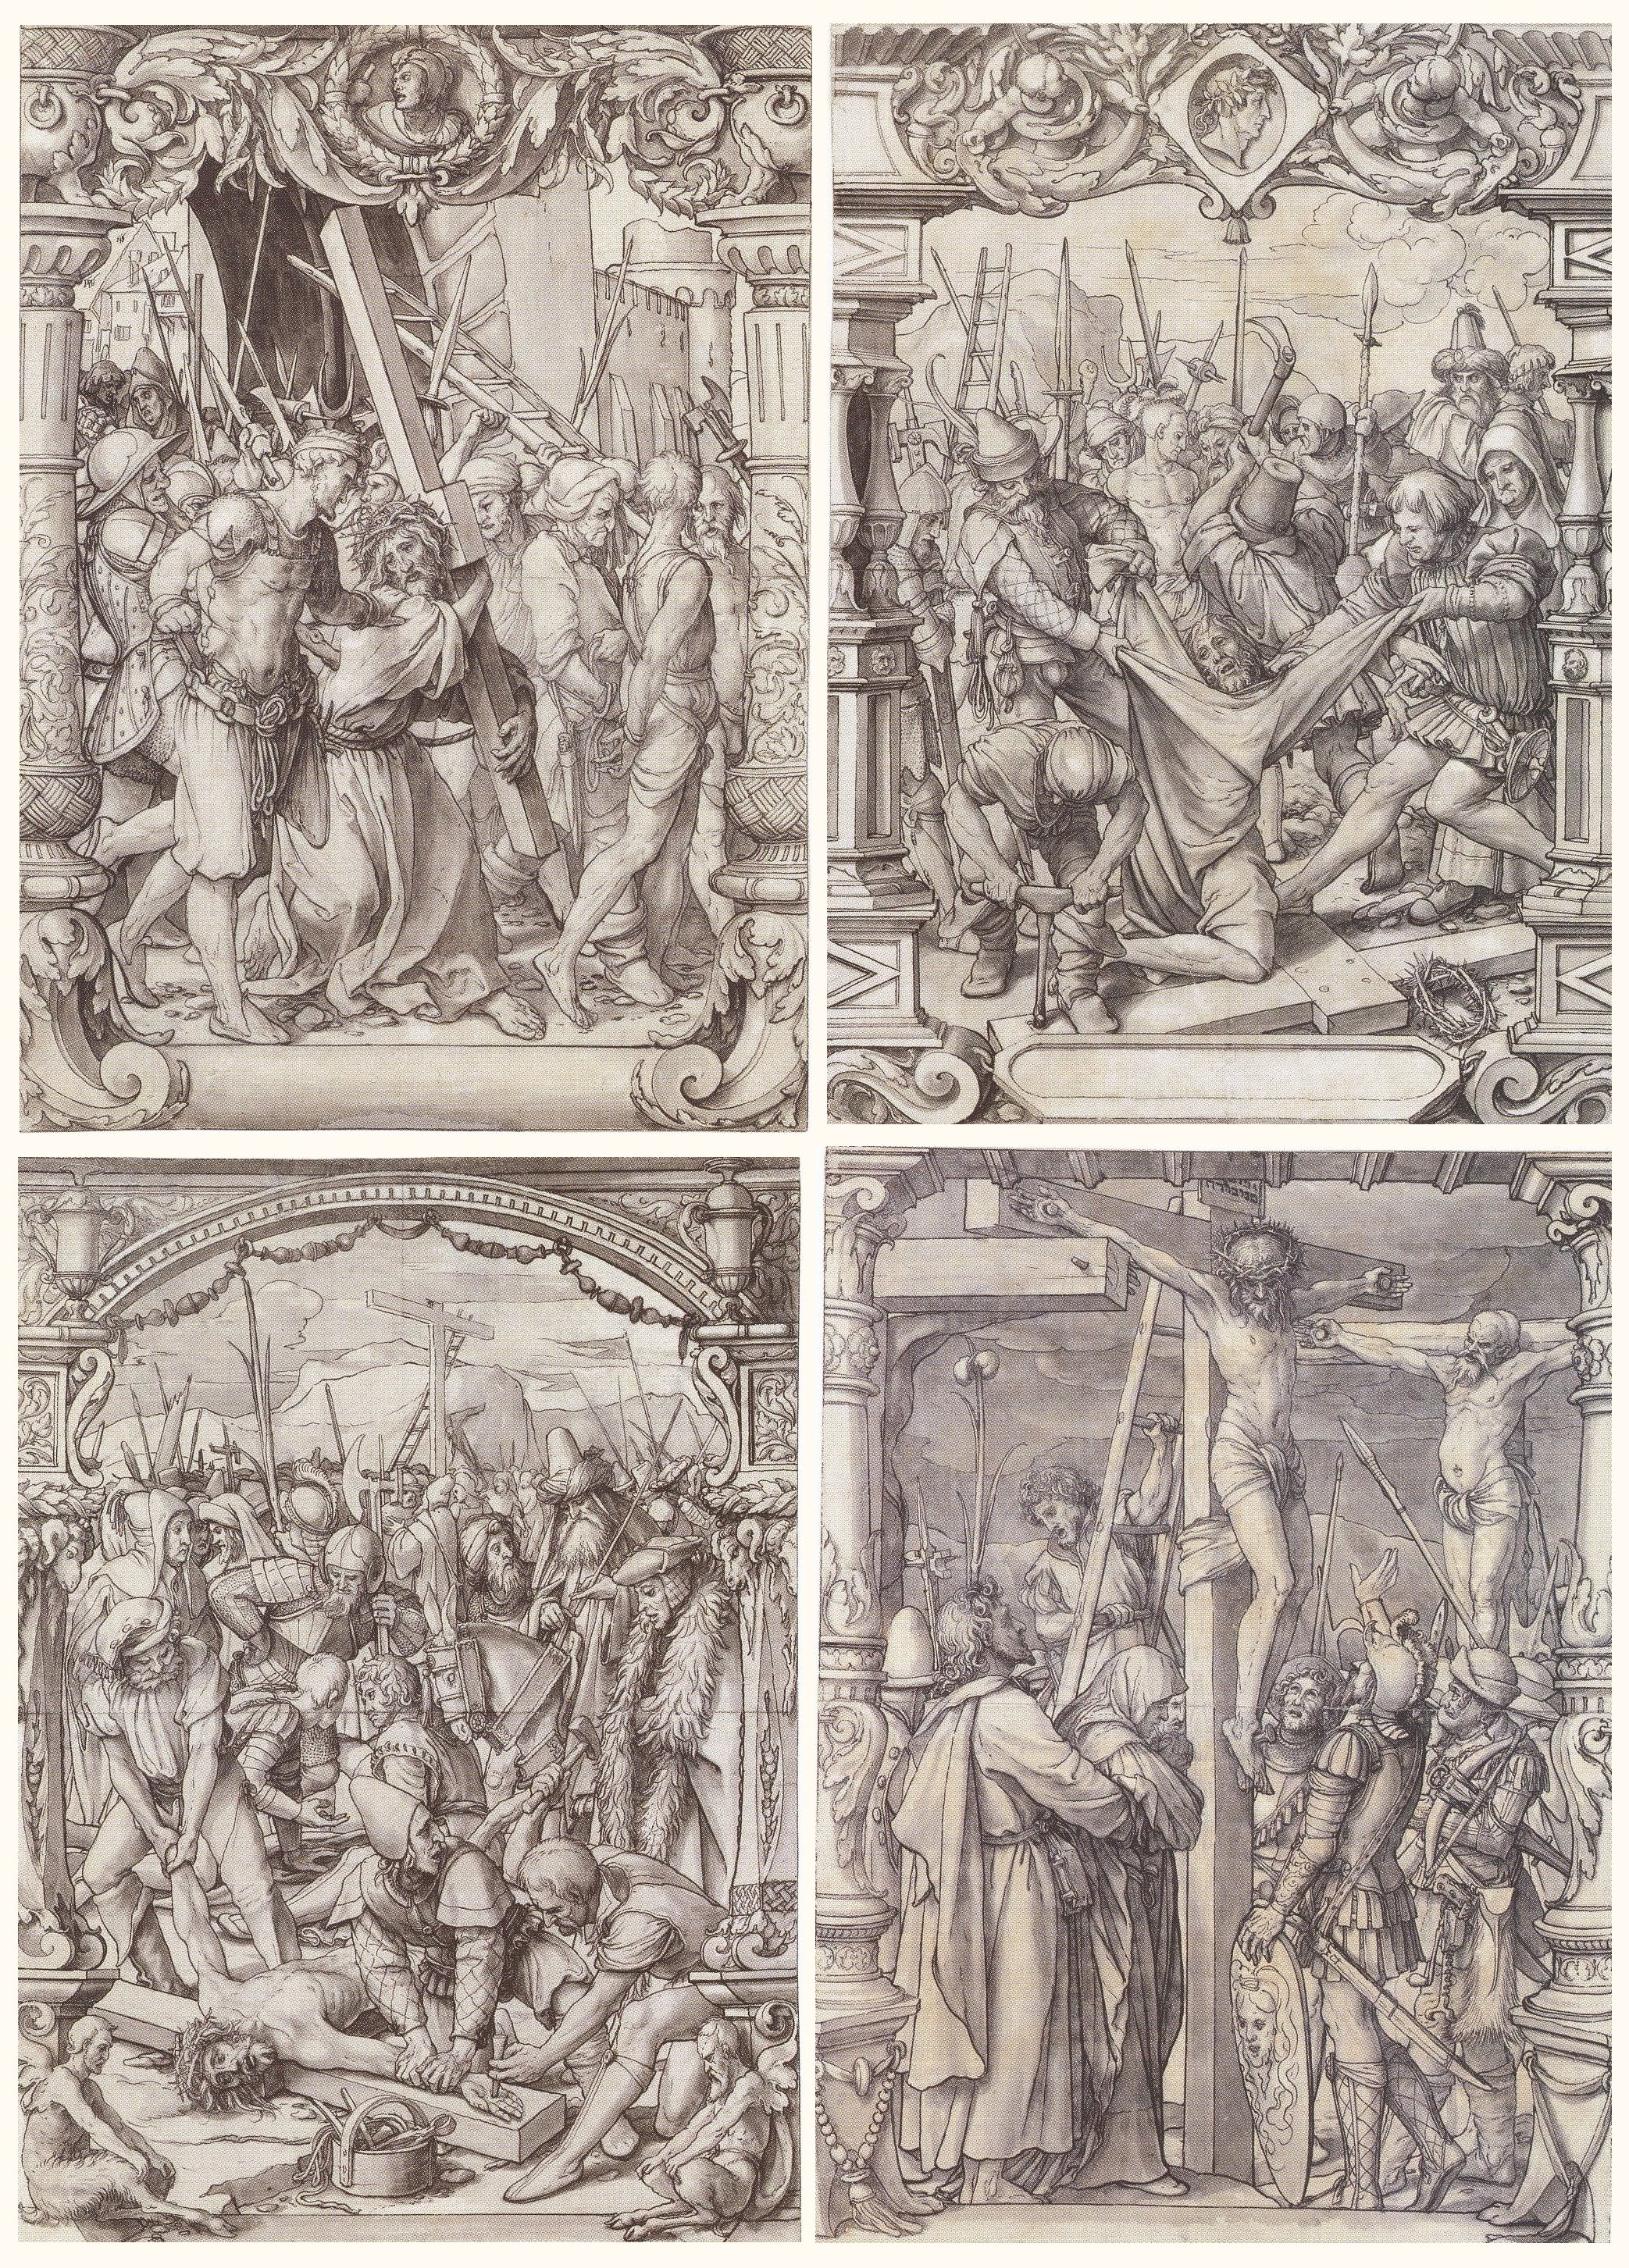 Stained Glass Window Designs for the Passion of Christ. c.1525-1528